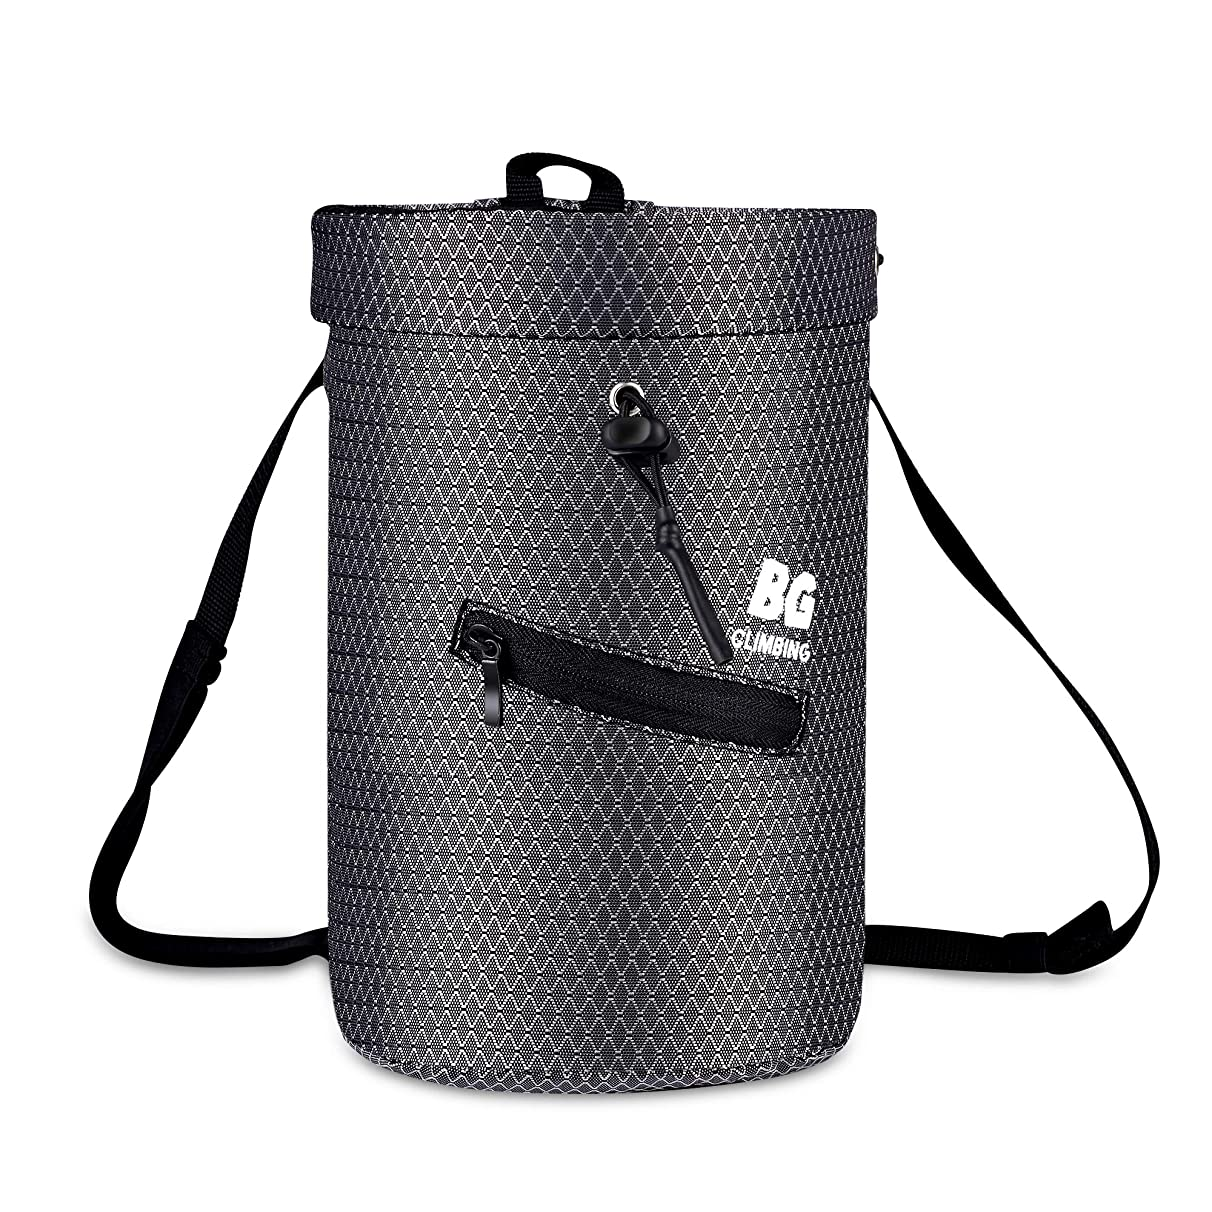 BG Climbing Chalk Bag XL with 2 Zippered Pocket and Elasticated Waistband Designed for Climbing, Bouldering or Big wall; Zippered pocket for large phone (iPhone XS MAX / Galaxy S10 Plus)